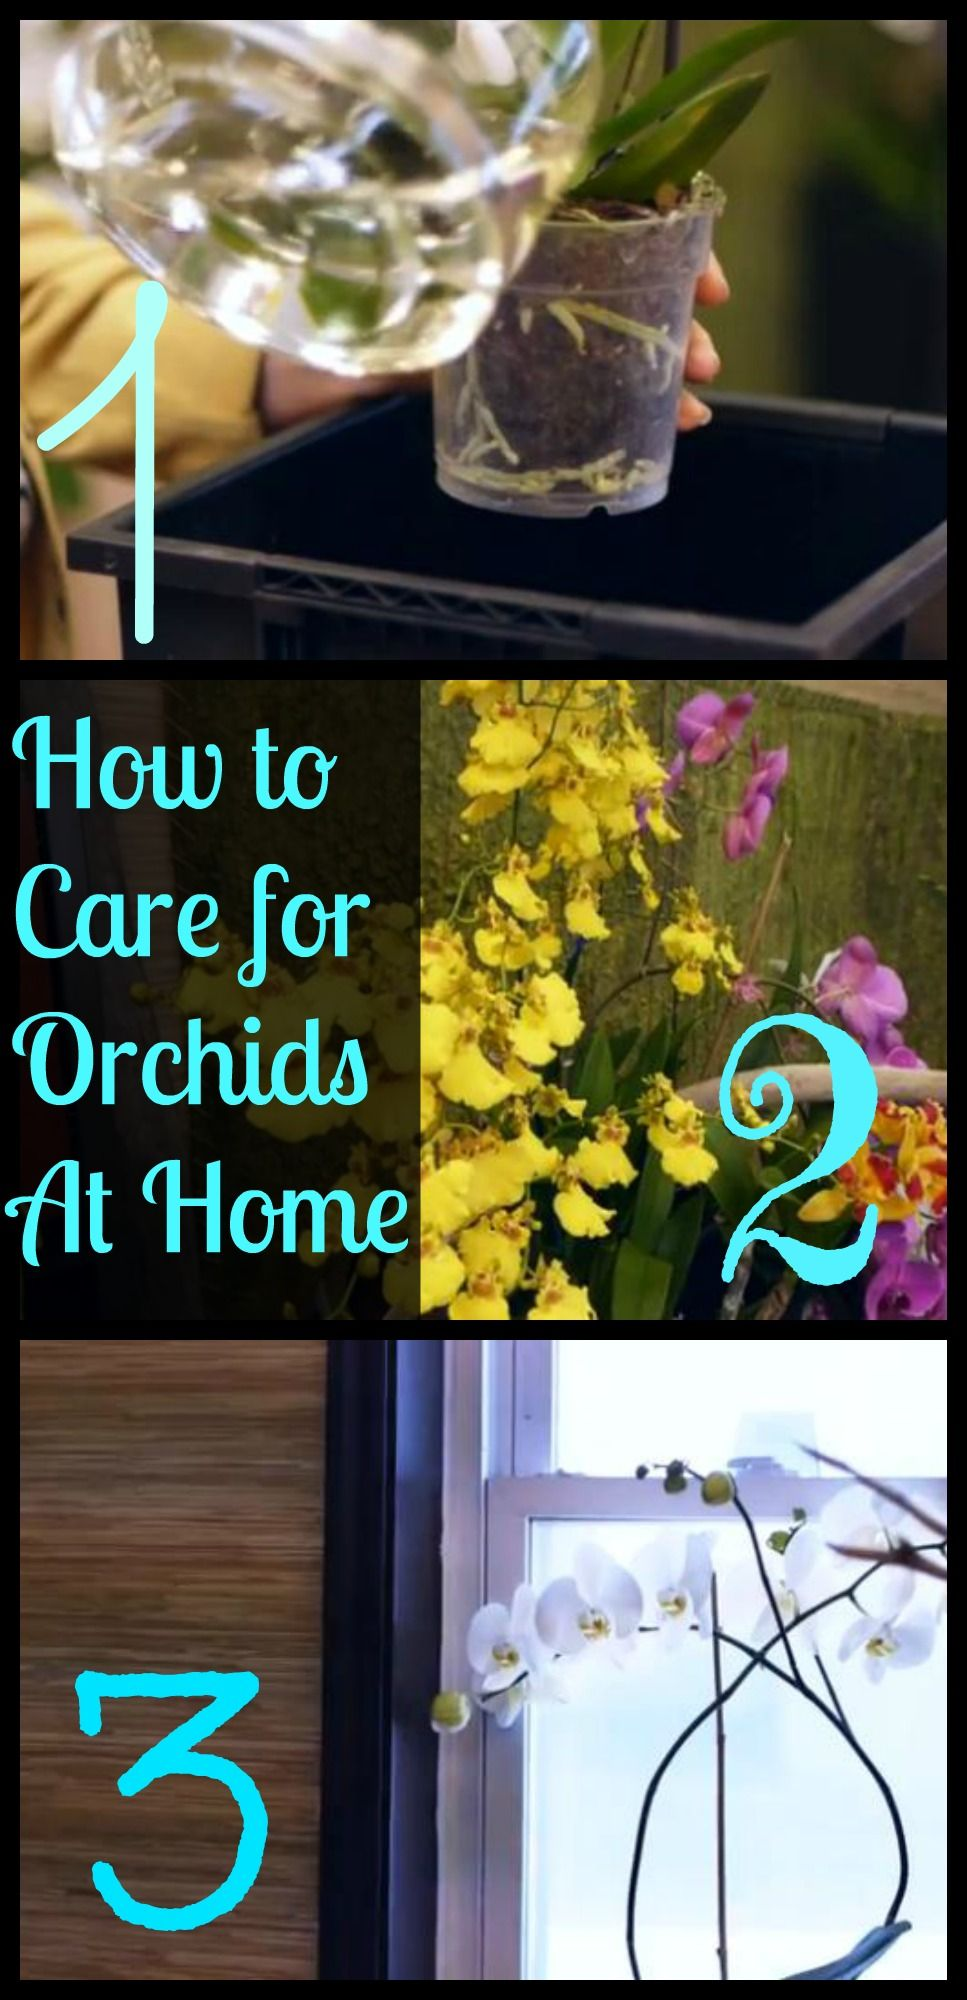 Photo of How to Care for Orchids at Home